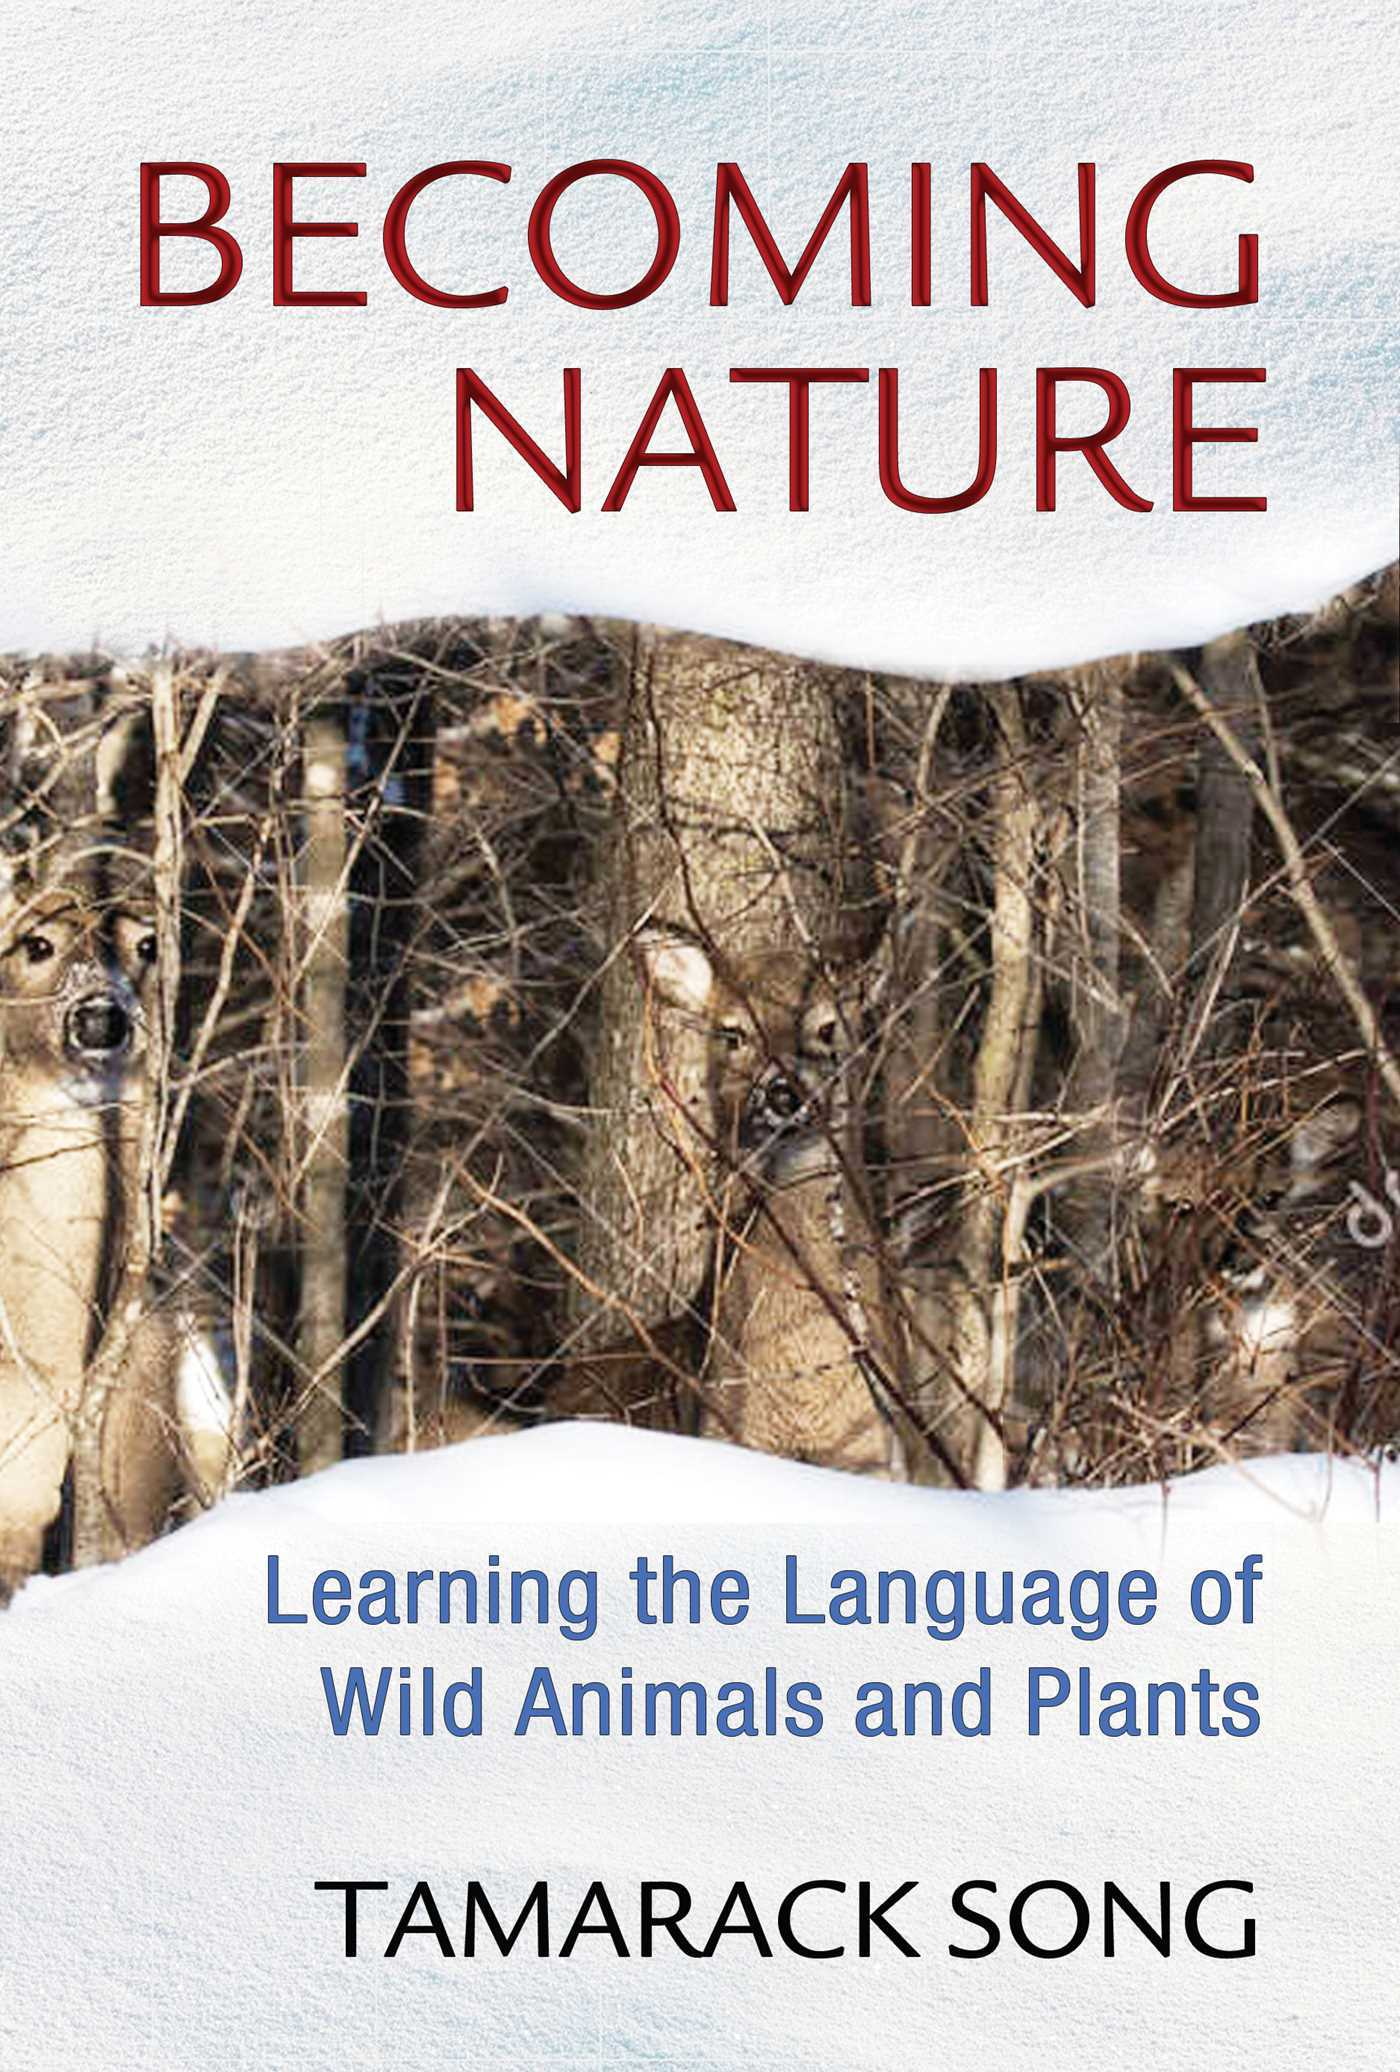 Becoming Nature: Learning the Language of Wild Animals and Plants Tamarack Song